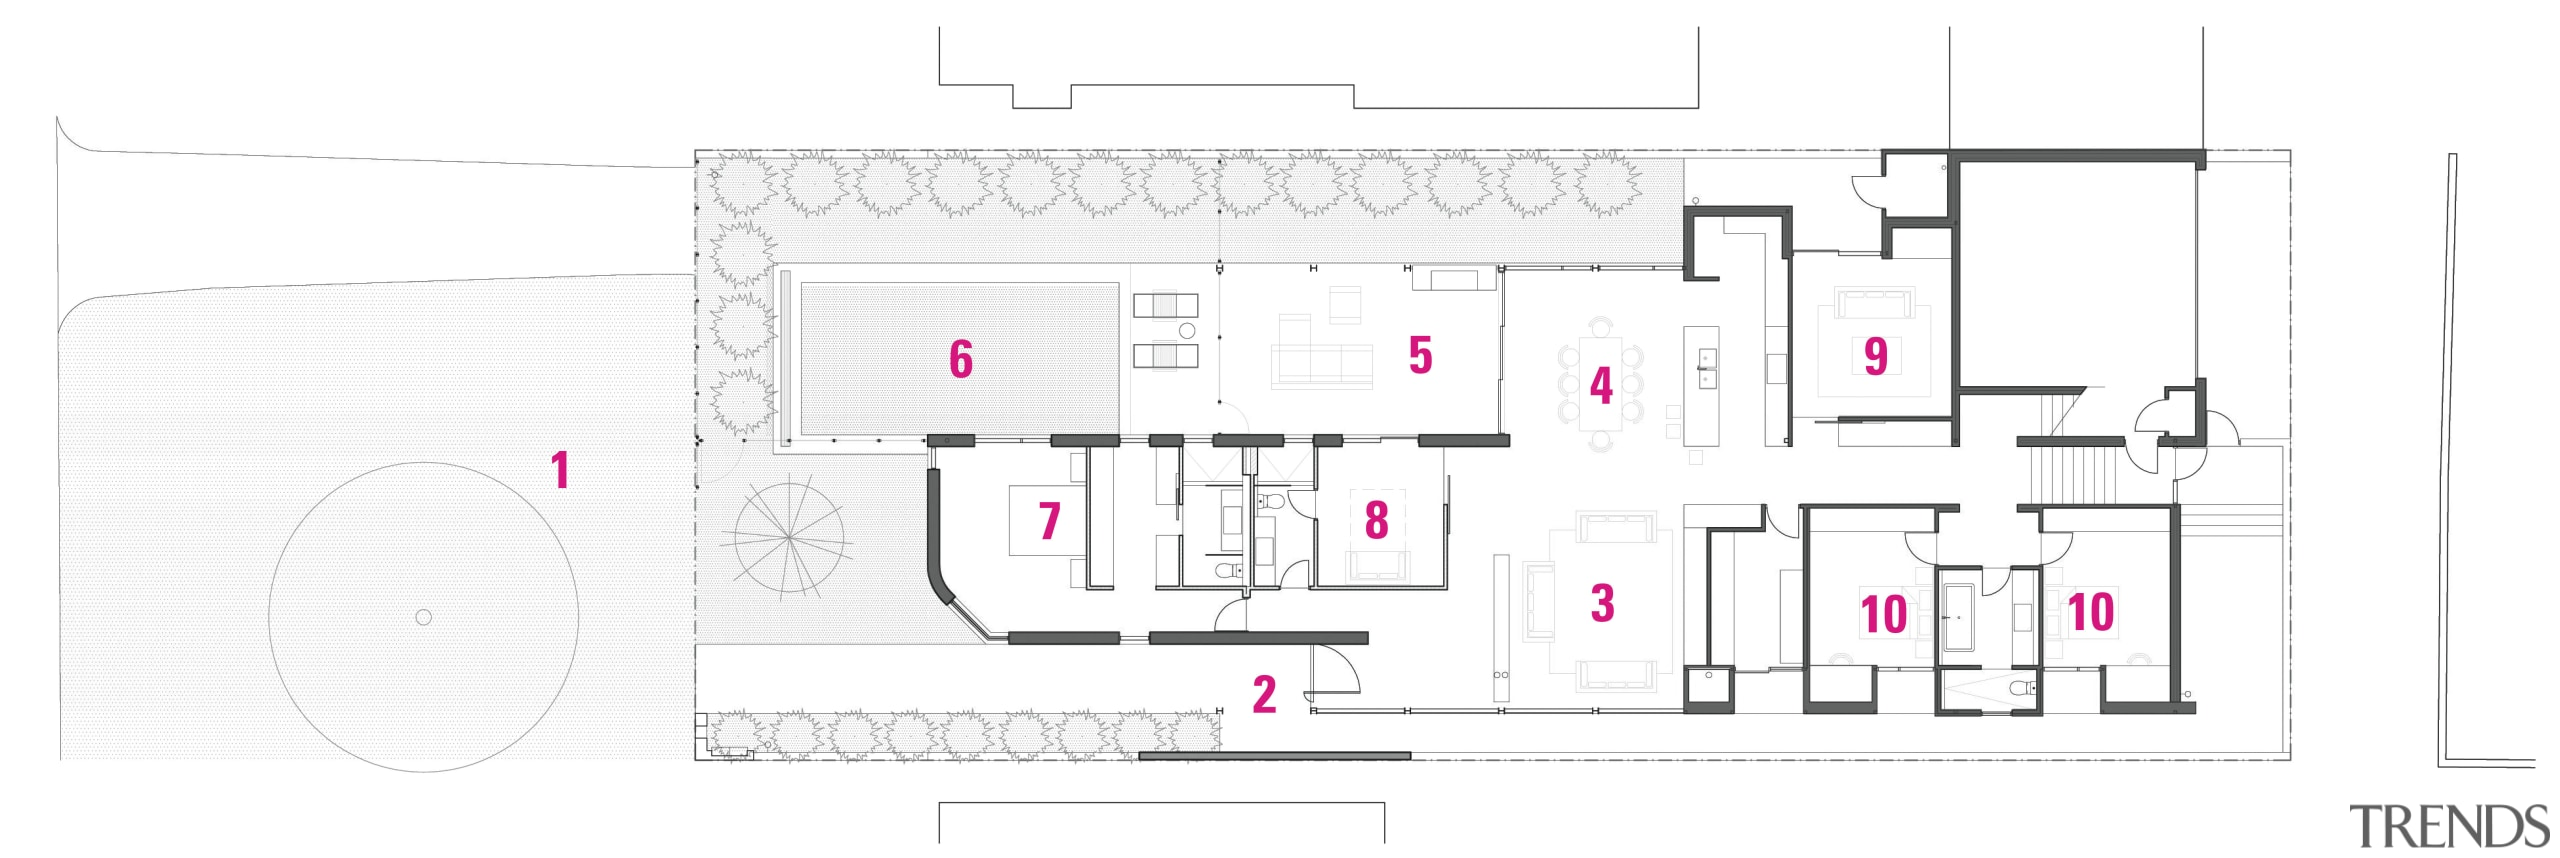 Final floor plan. - Final floor plan. - angle, architecture, area, design, diagram, drawing, elevation, floor plan, line, plan, product, product design, structure, white